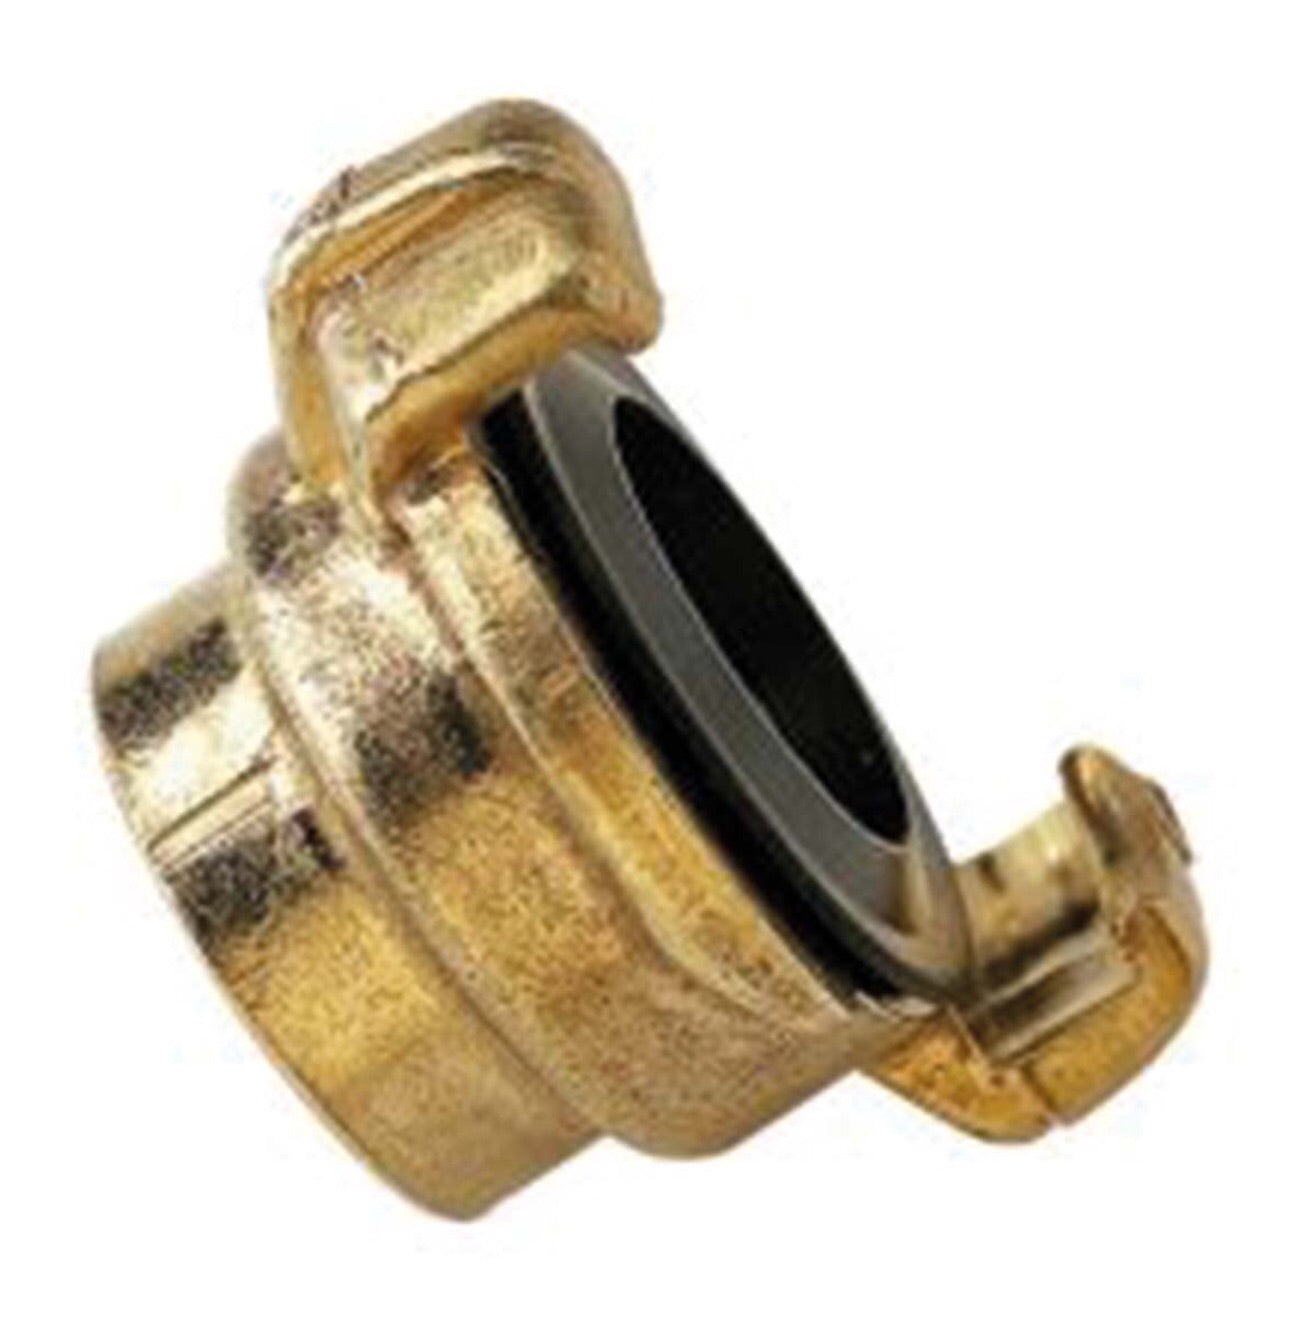 "Geka Style Fitting to 3/4"" female hose thread end , Part Number 3223636 for IMER Koine 35 / 4 pumps"